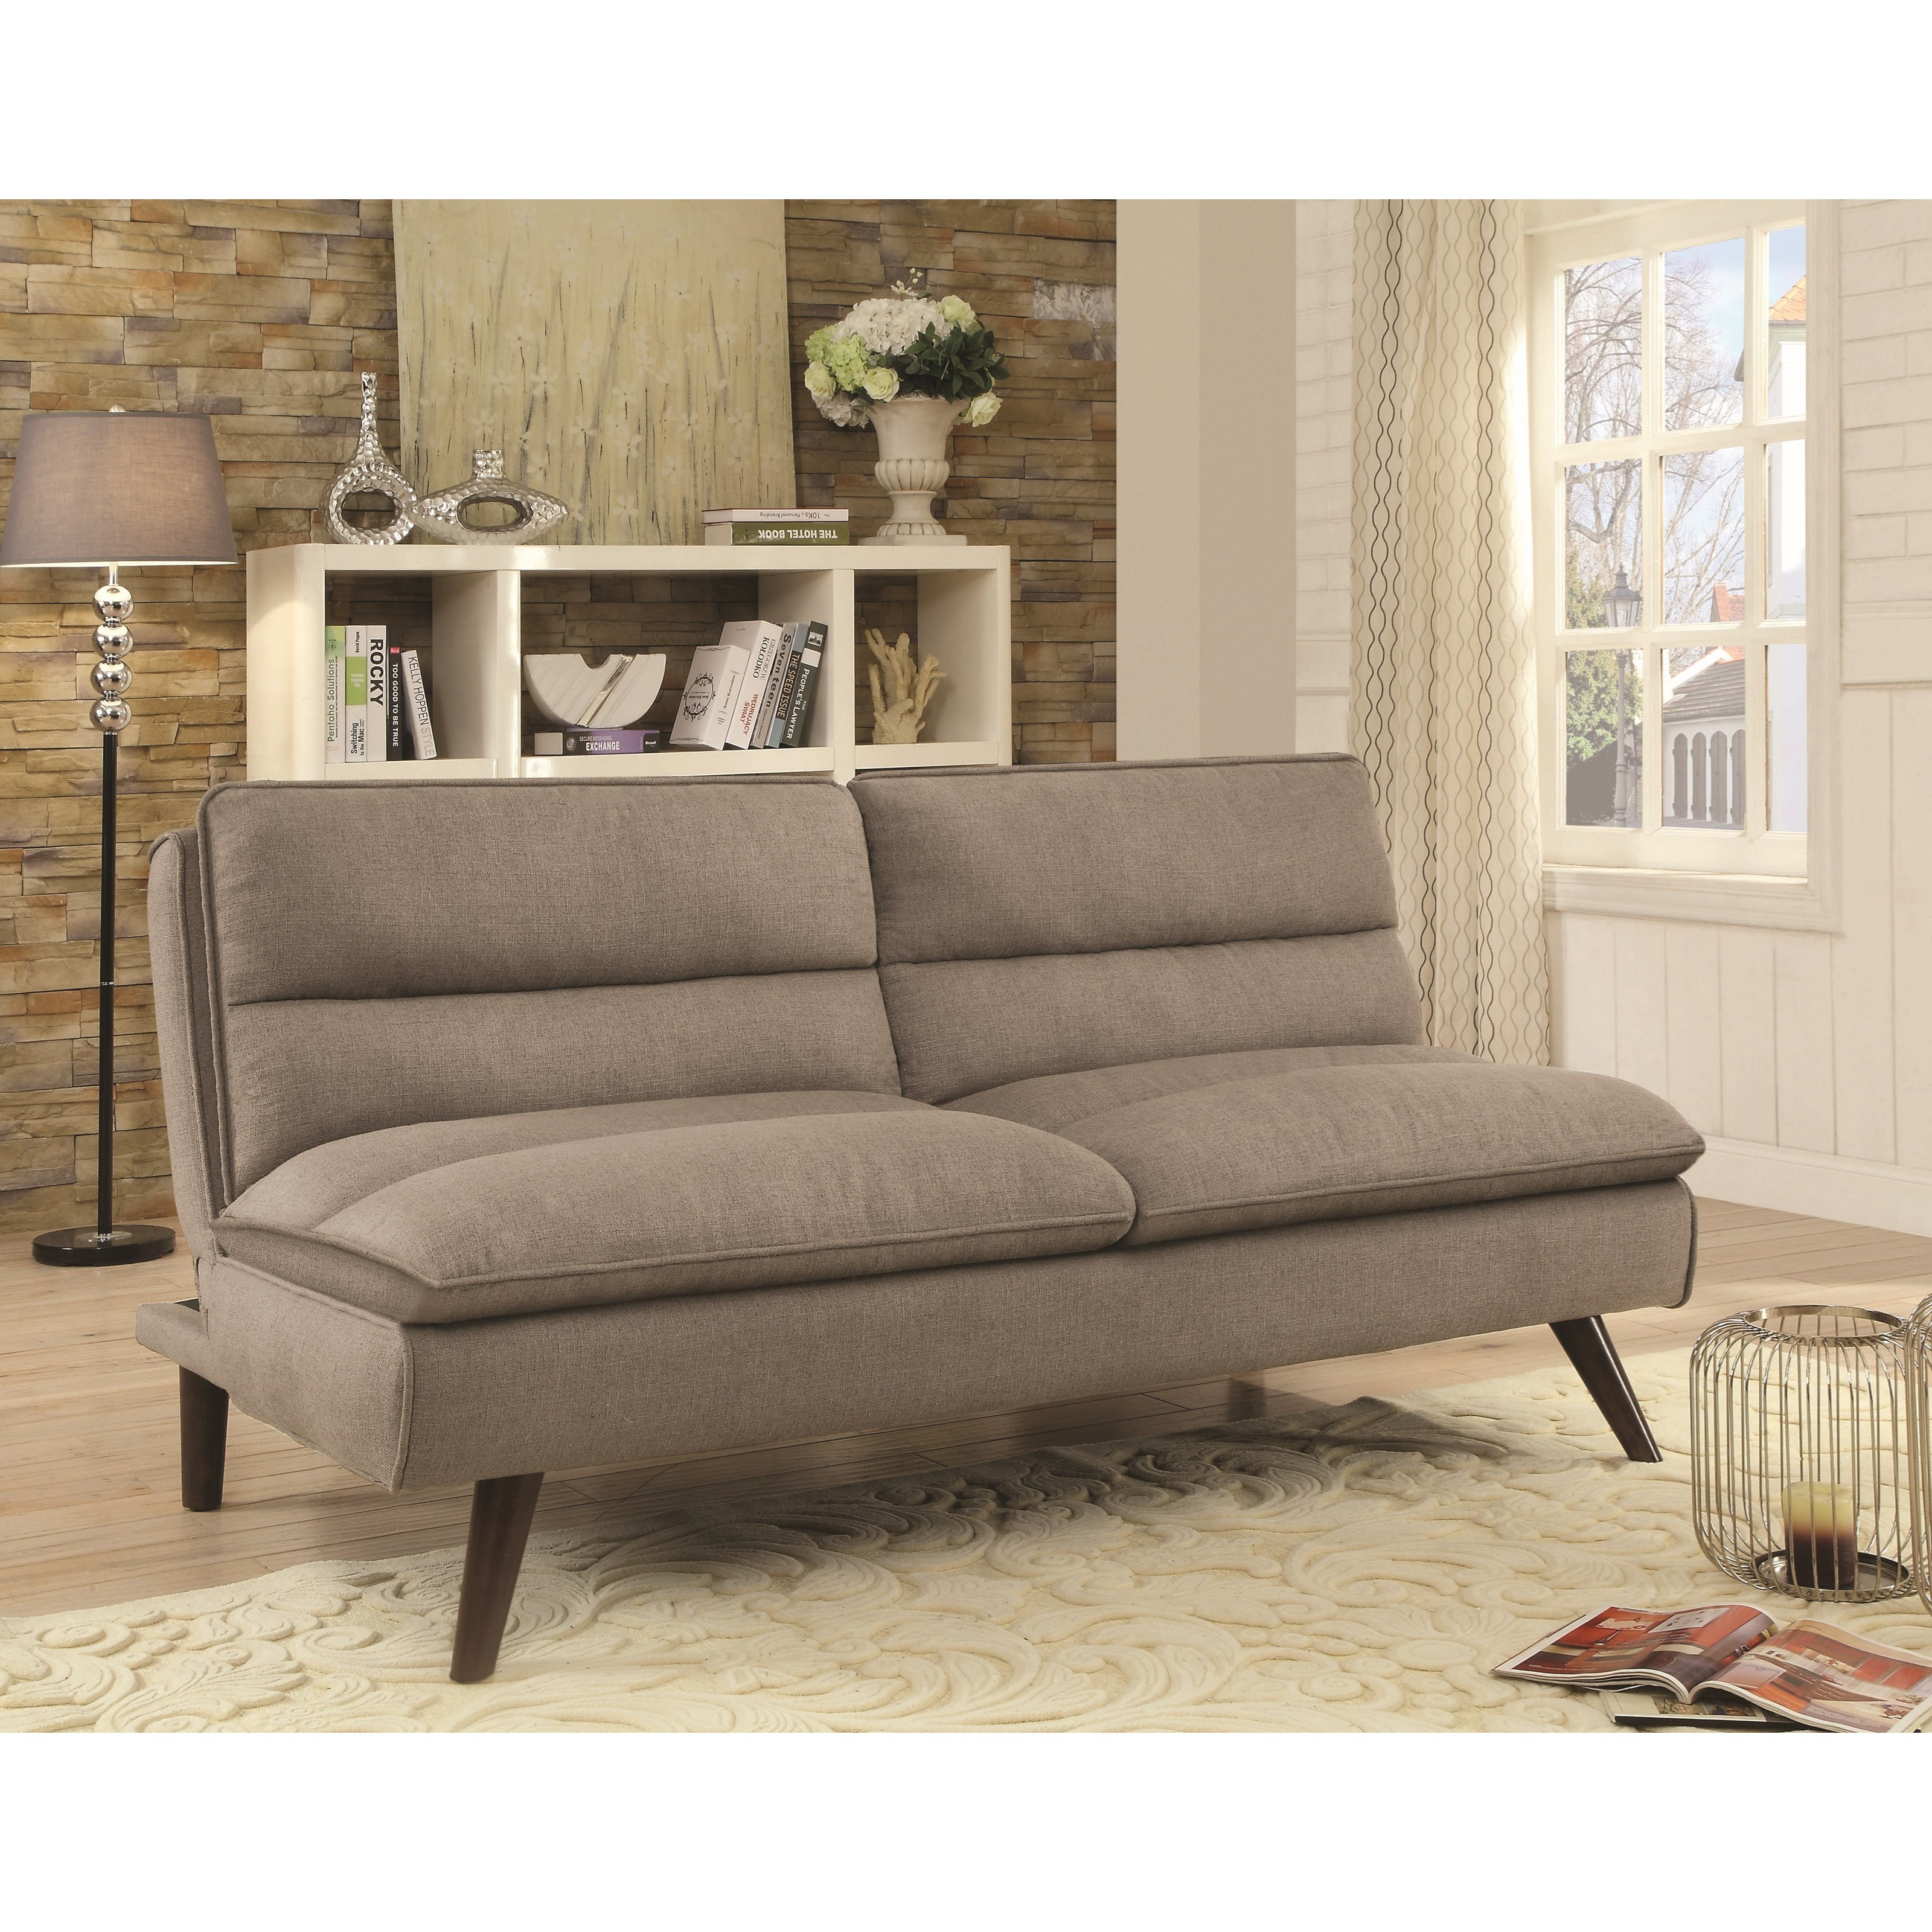 Coaster Futons Sofa Bed - Item Number: 500320